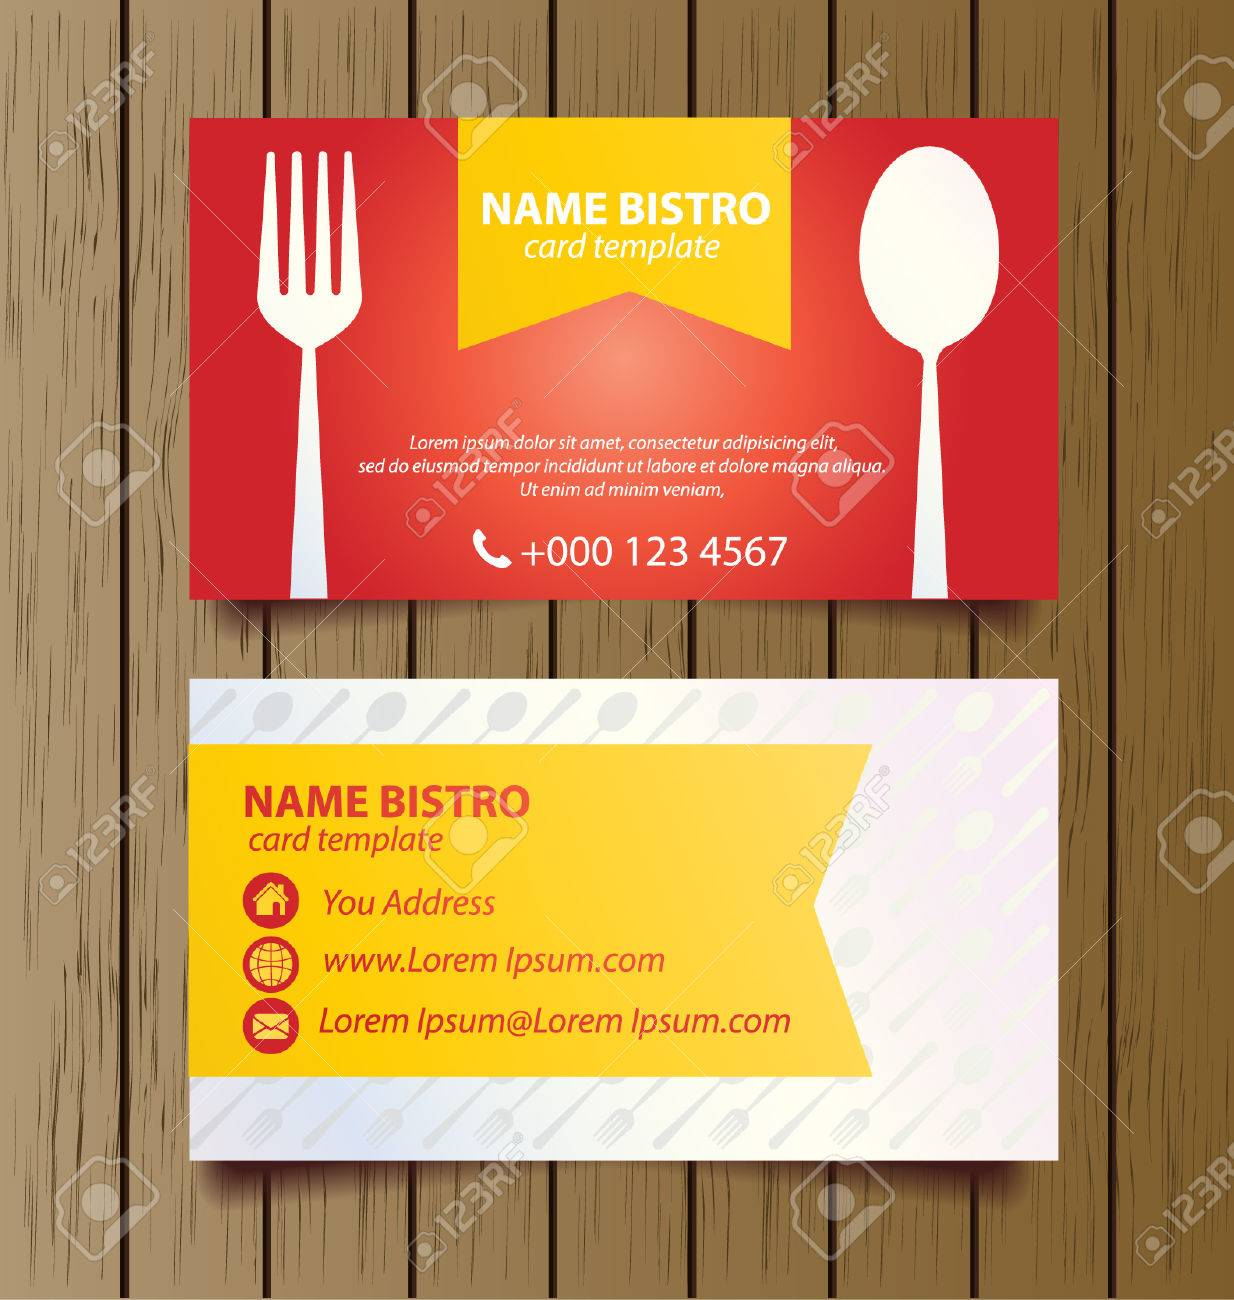 Business card template for restaurant business vector royalty free business card template for restaurant business vector stock vector 28388460 fbccfo Image collections